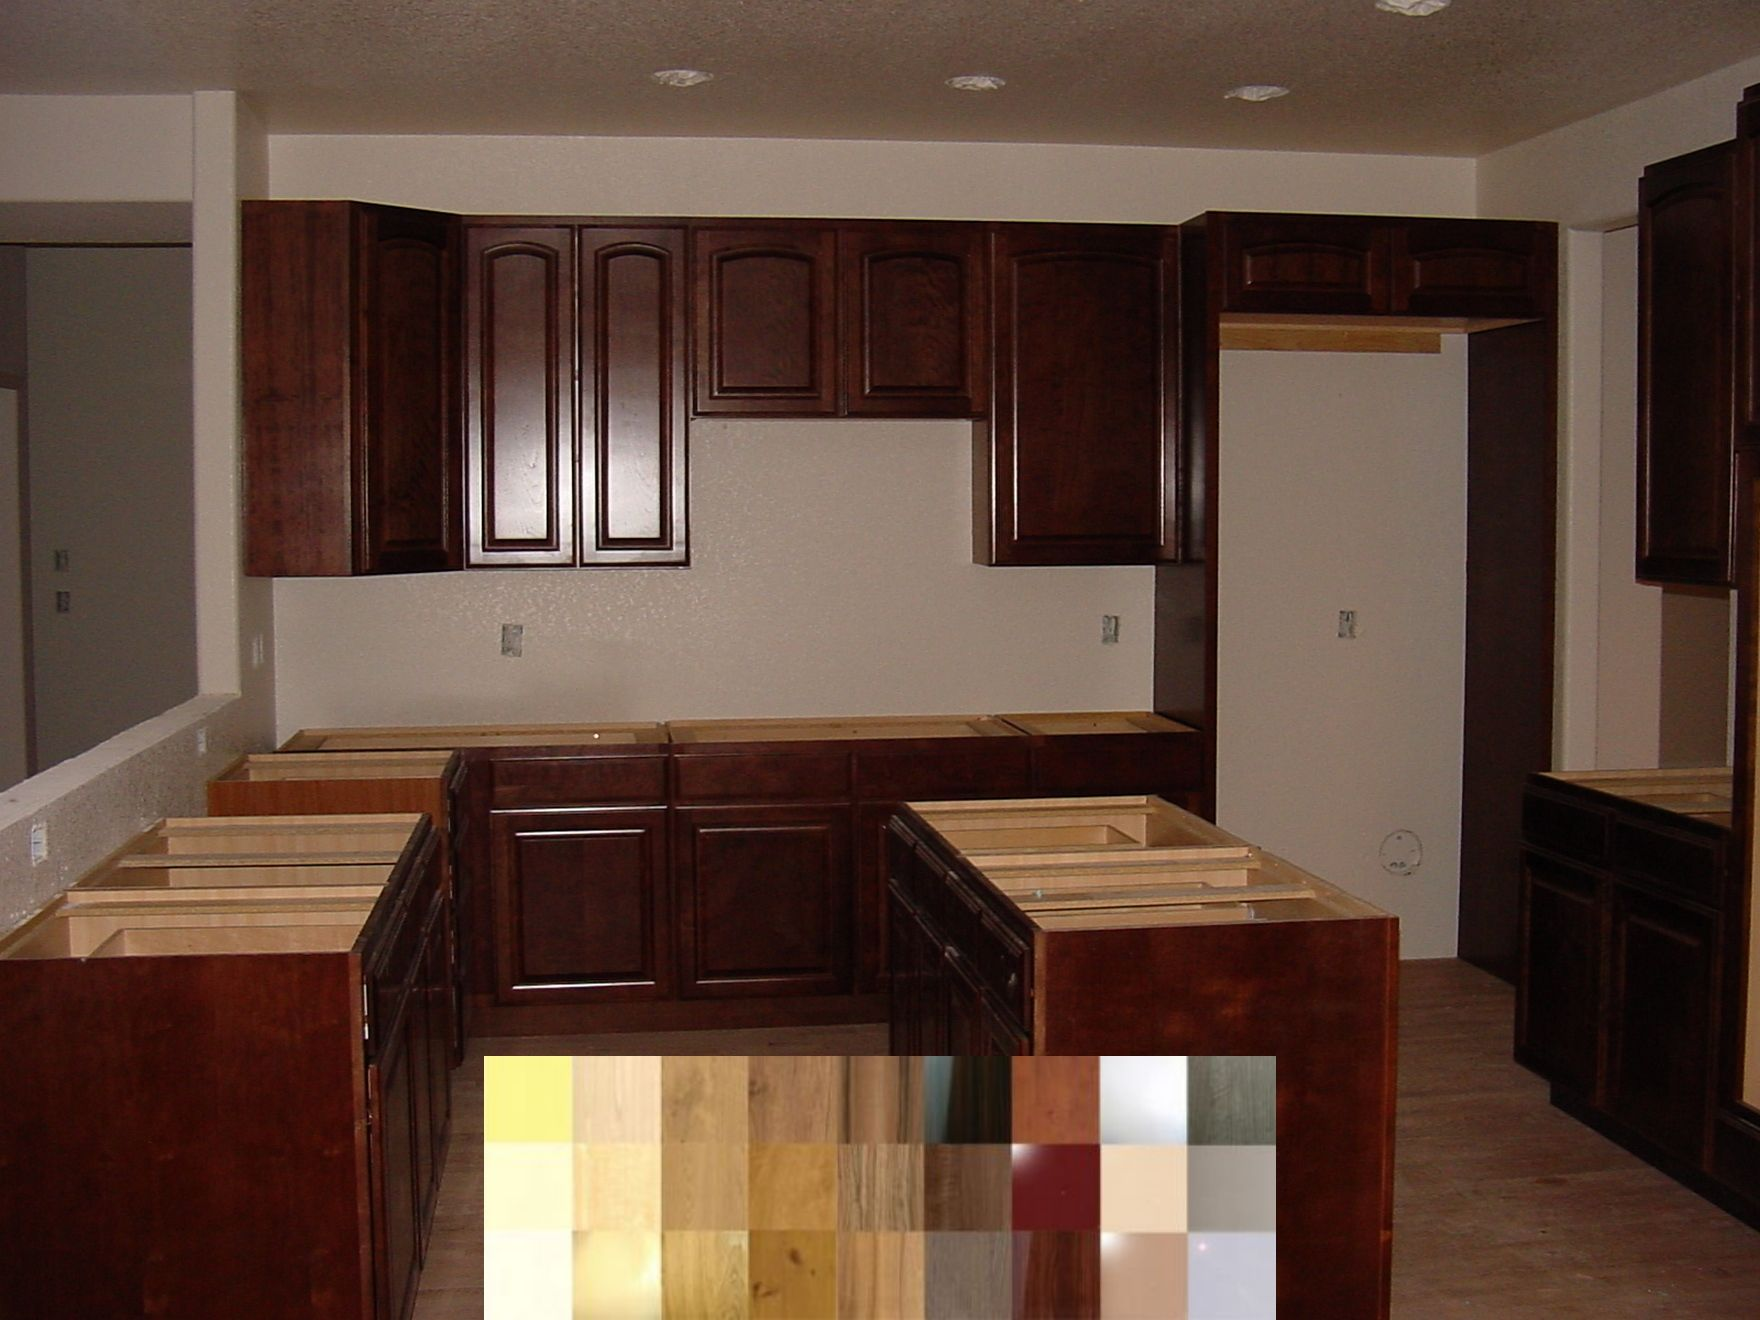 How To Add Extra Shelves To Kitchen Cabinets And Diy Kitchen Cabinets Prices South Africa Contemp Diy Kitchen Cabinets Kitchen Cabinets Kitchen Cabinet Layout